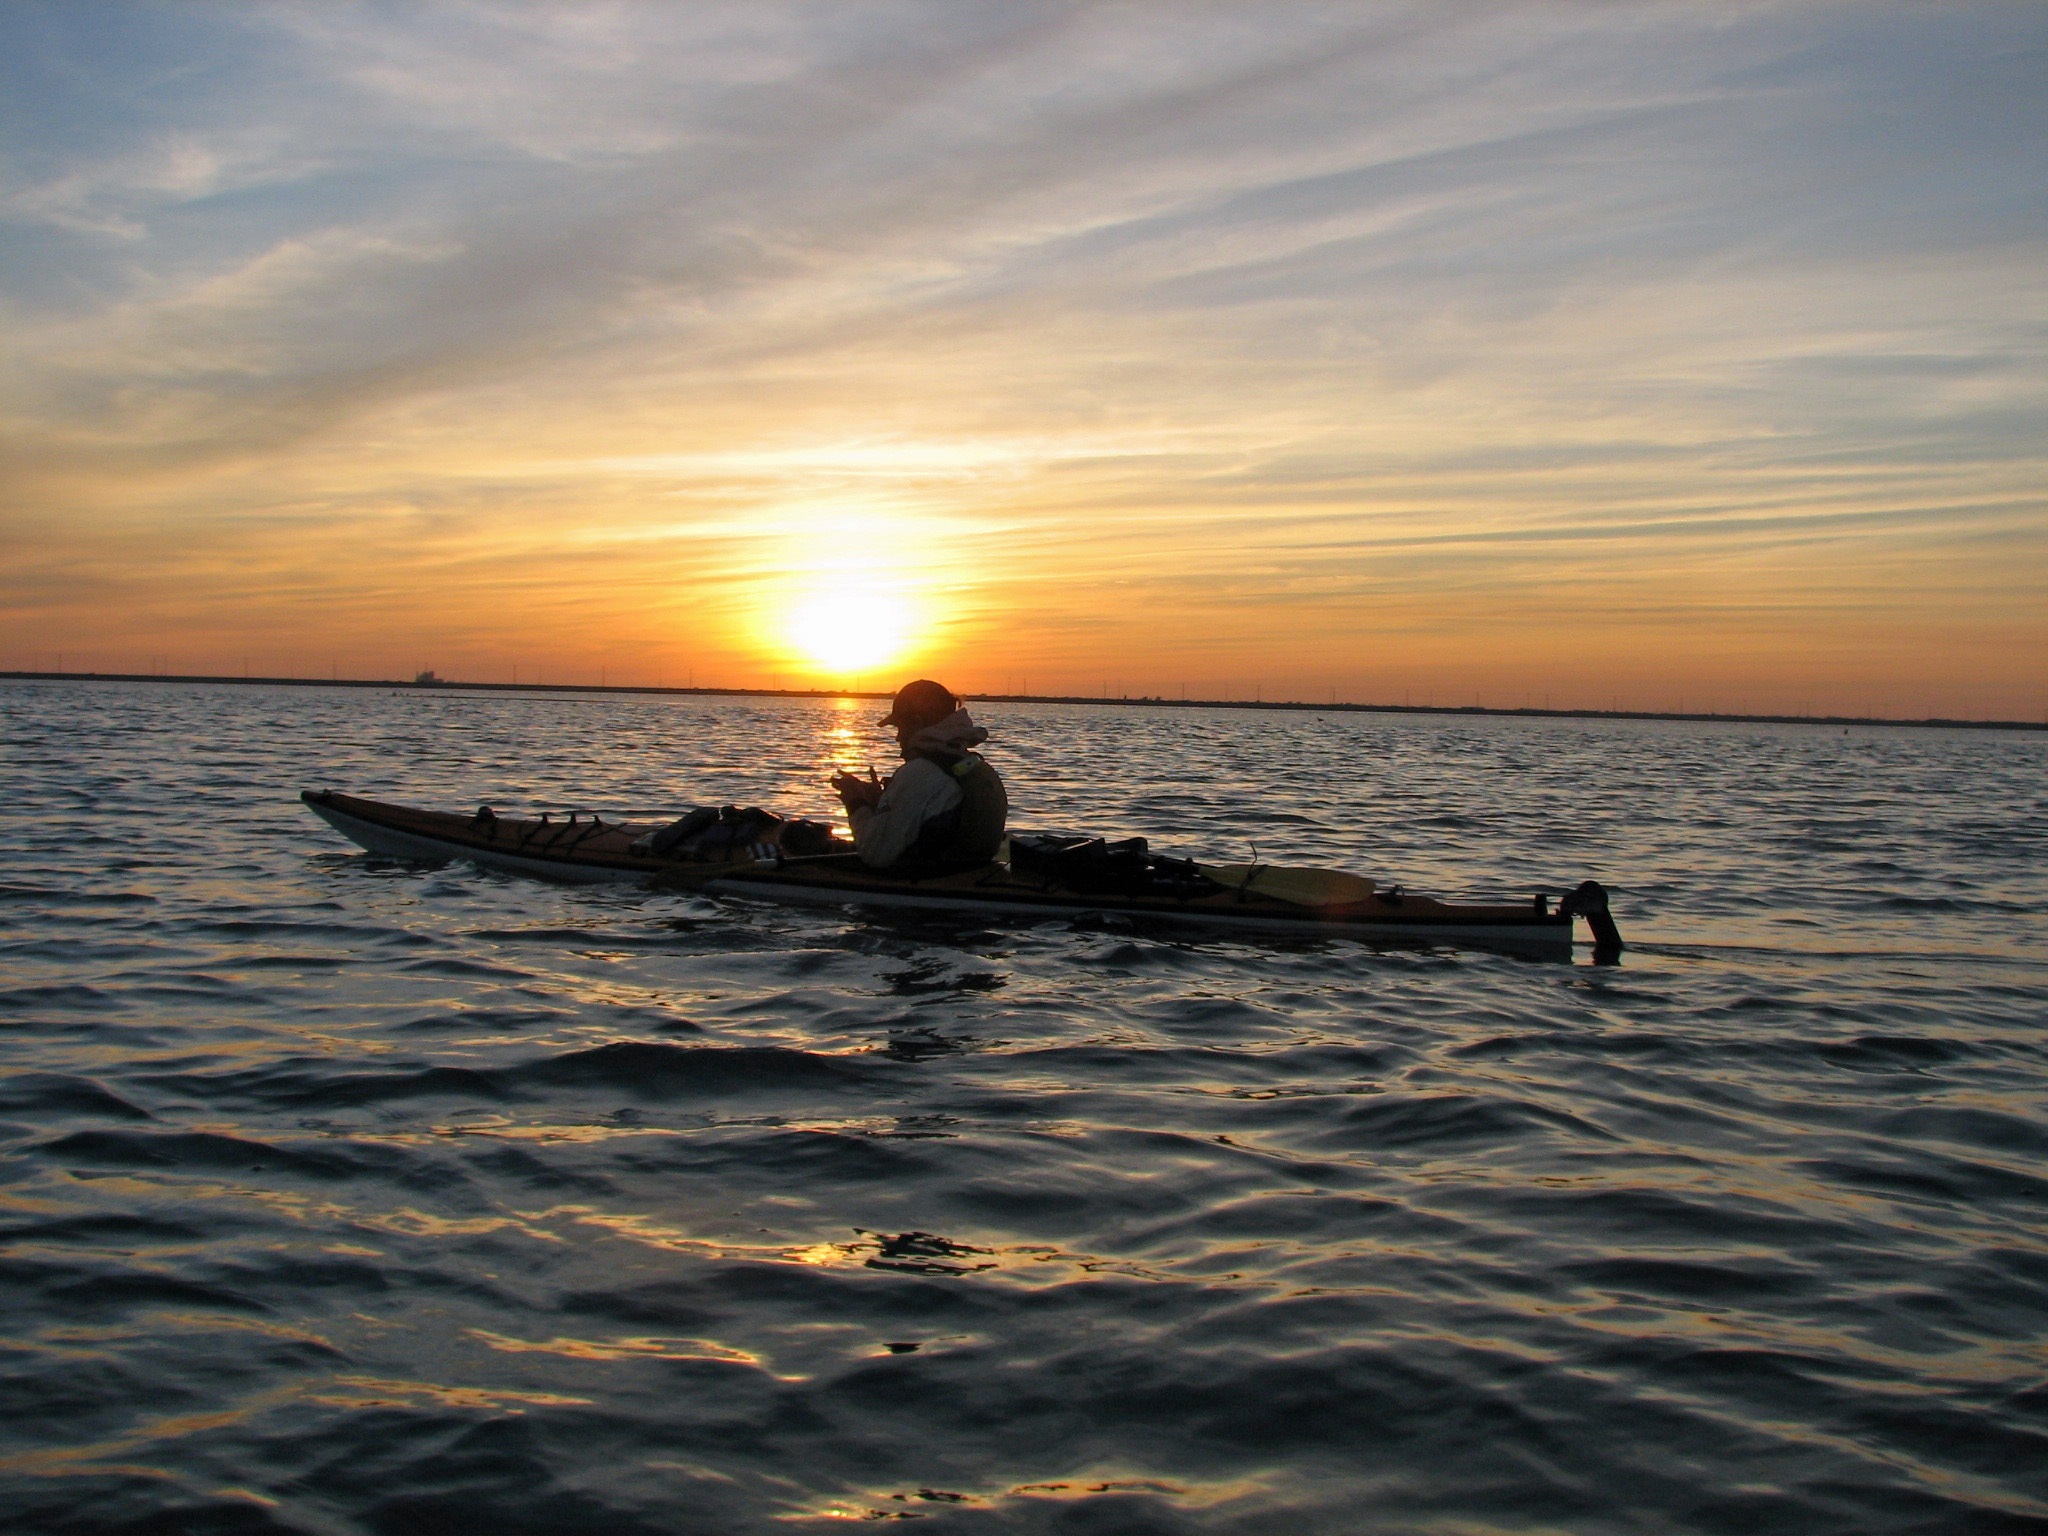 explore travel in around houston houston chronicle a photo of colin mcdonald in his kayak at sunset taken on colin mcdonald s kayak